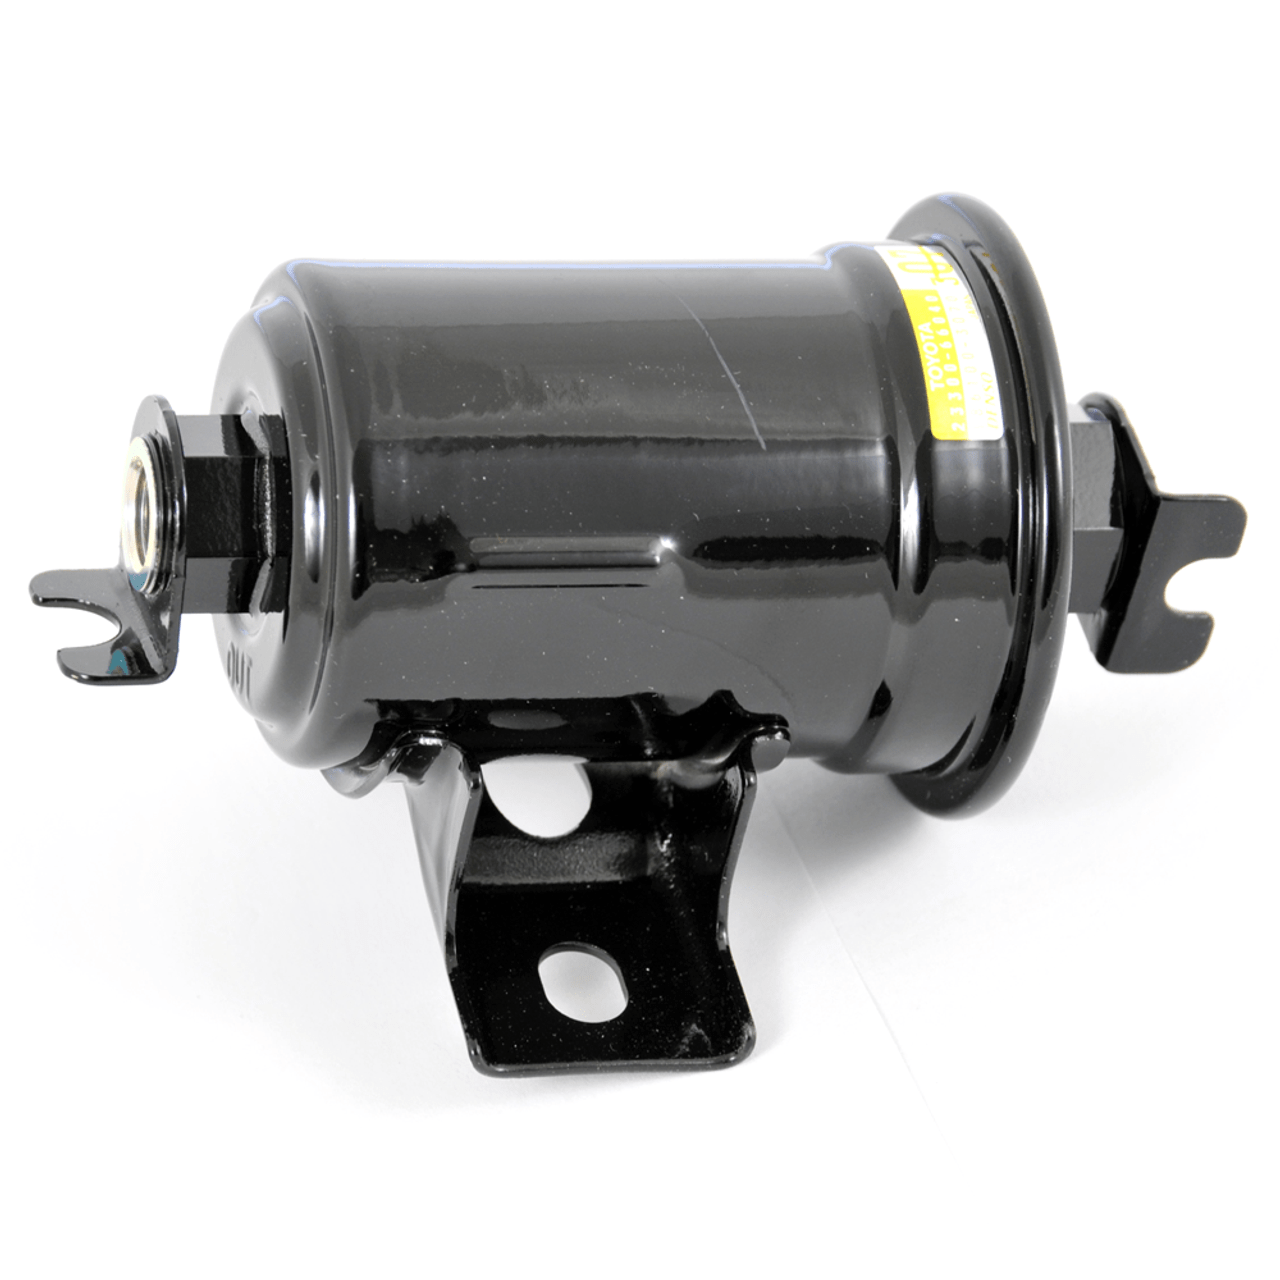 hight resolution of oem fuel filter 1fz 1 54017 1548893929 png c 2